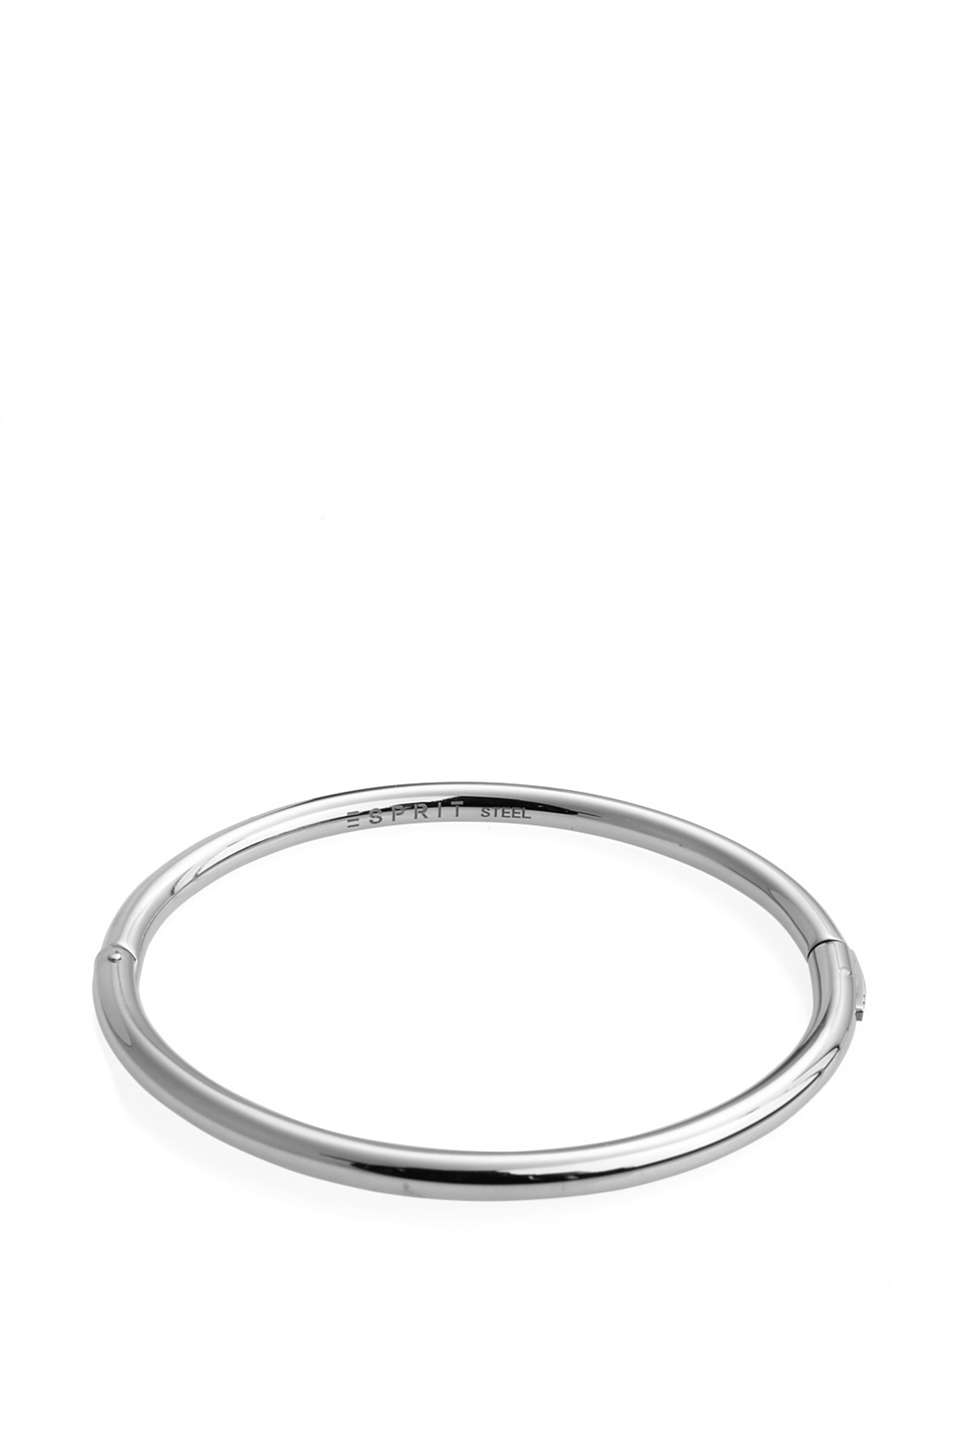 Esprit - stainless-steel bangle